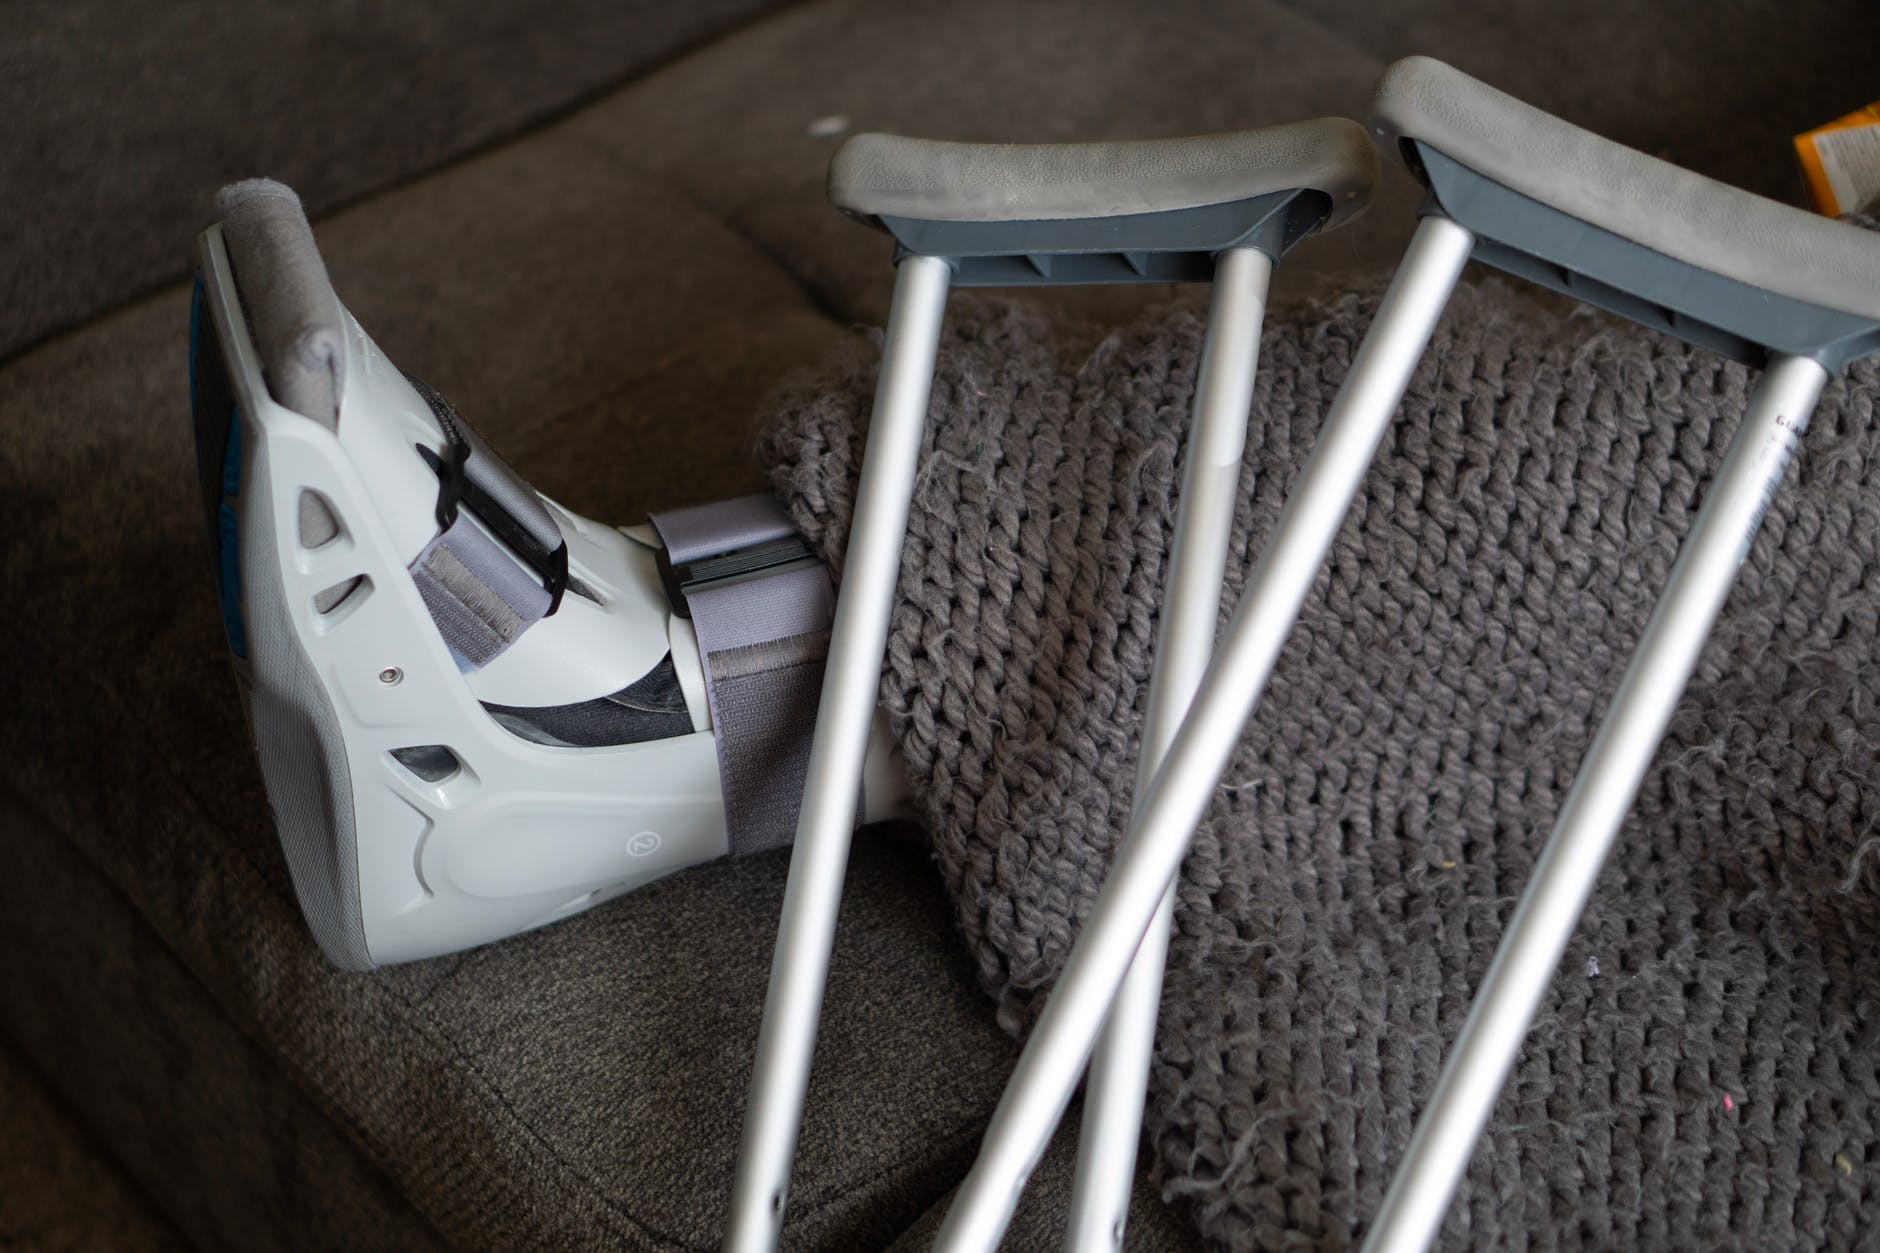 They yelld at her for breaking her crutches. | Source: Pexels